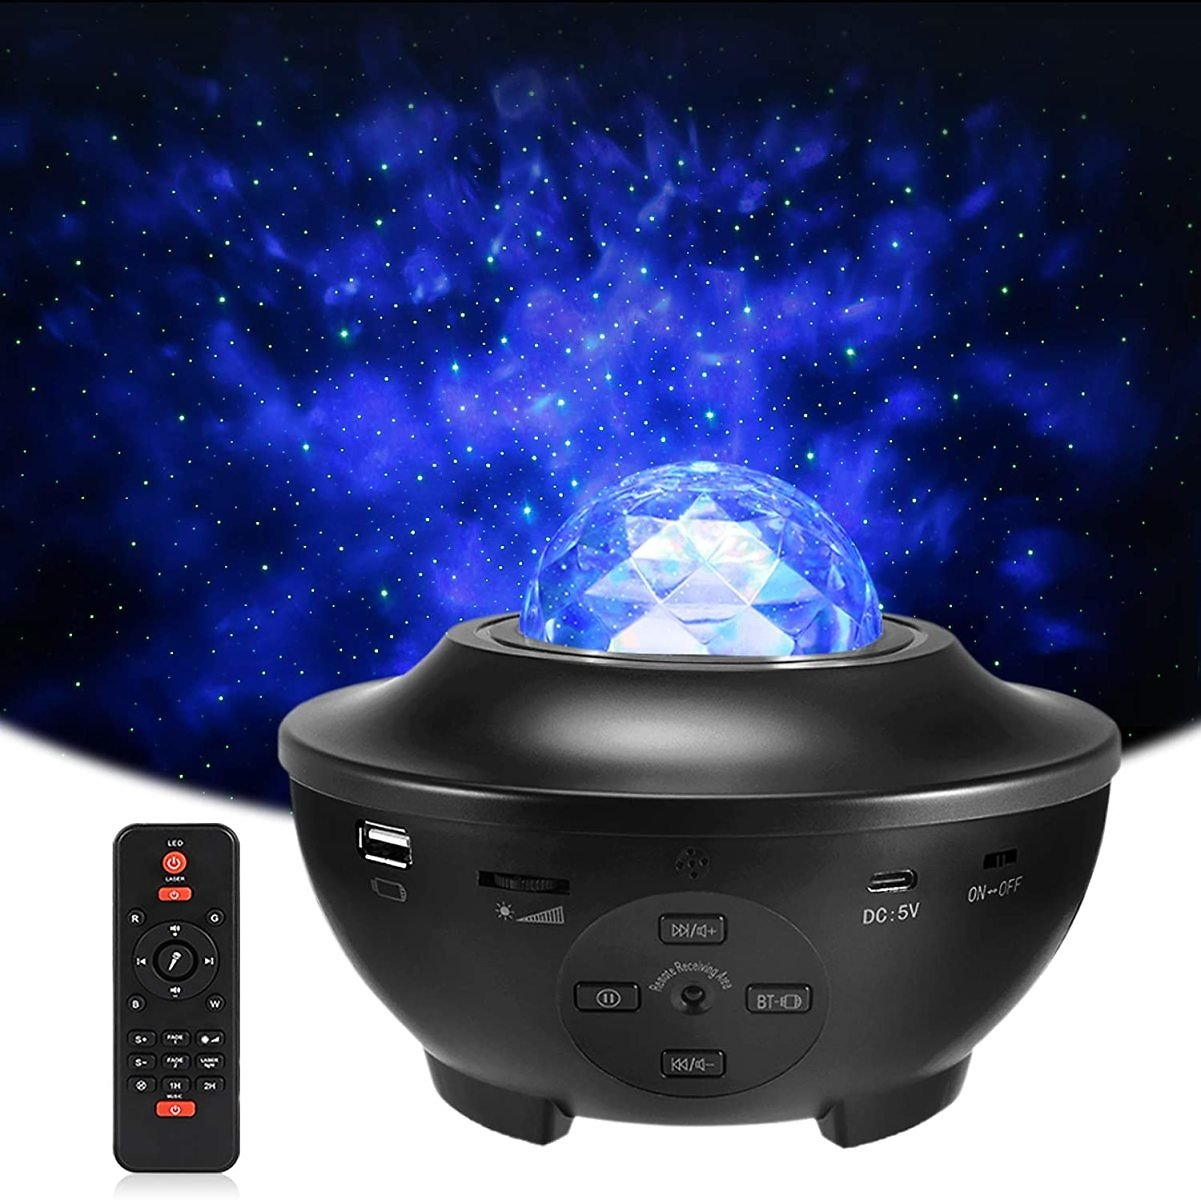 Star Projector Night Light, Delicacy Sky Ocean Wave Starry Projector with Bluetooth Speaker,Rotating LED Nebula Cloud Light for